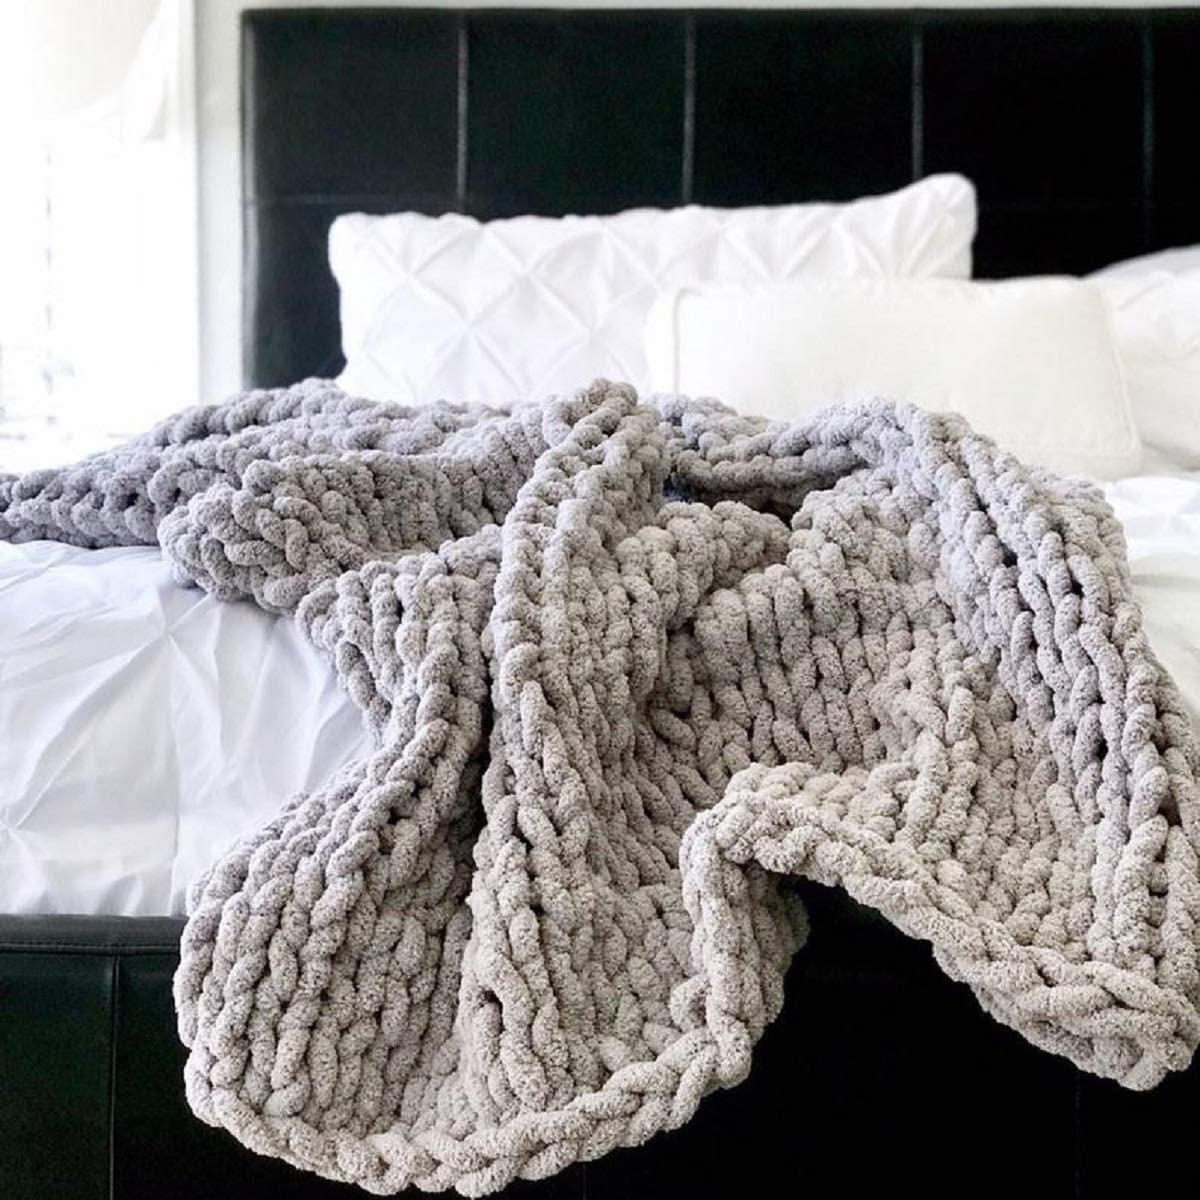 VIYEAR Knit Throw Jumbo Chenille Blanket for Cuddling up in Bed, Chunky Chenille Yarn Arm Knit Blanket on The Couch or Sofa Gray 79